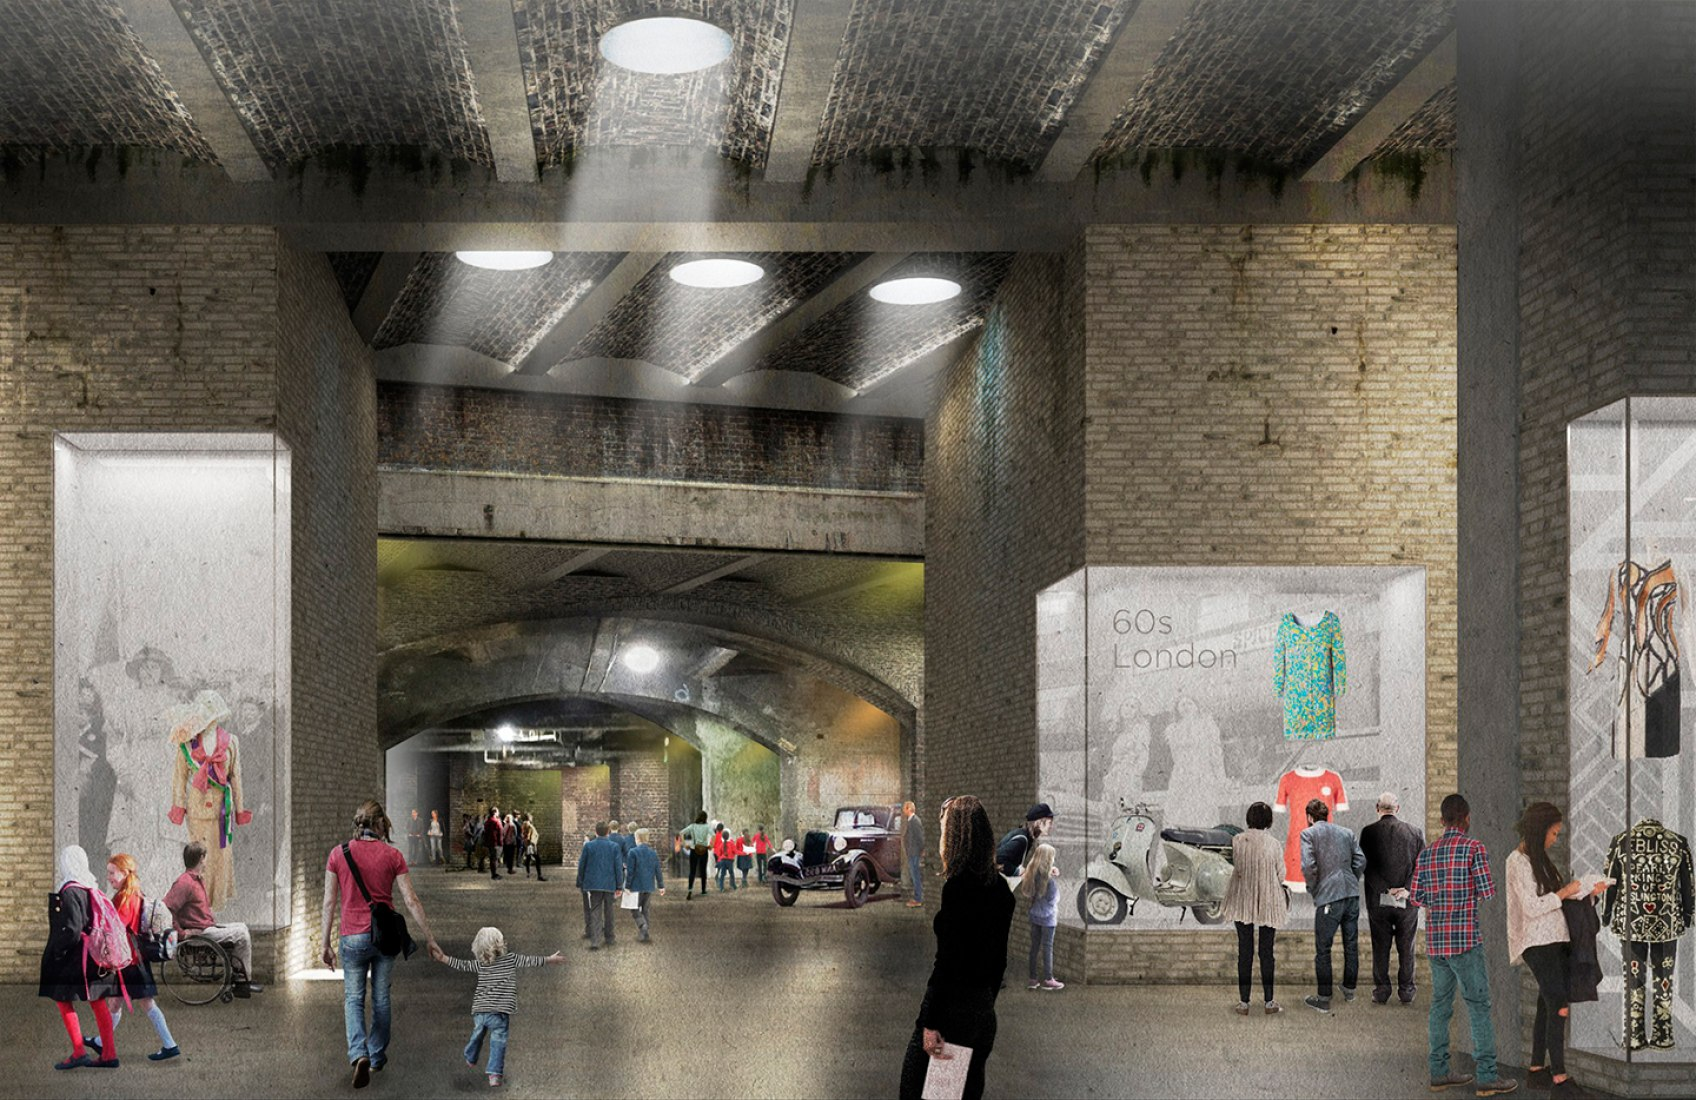 Galleries visualization. New Museum of London by Asif Khan and Stanton Williams. Image courtesy of Asif Khan.